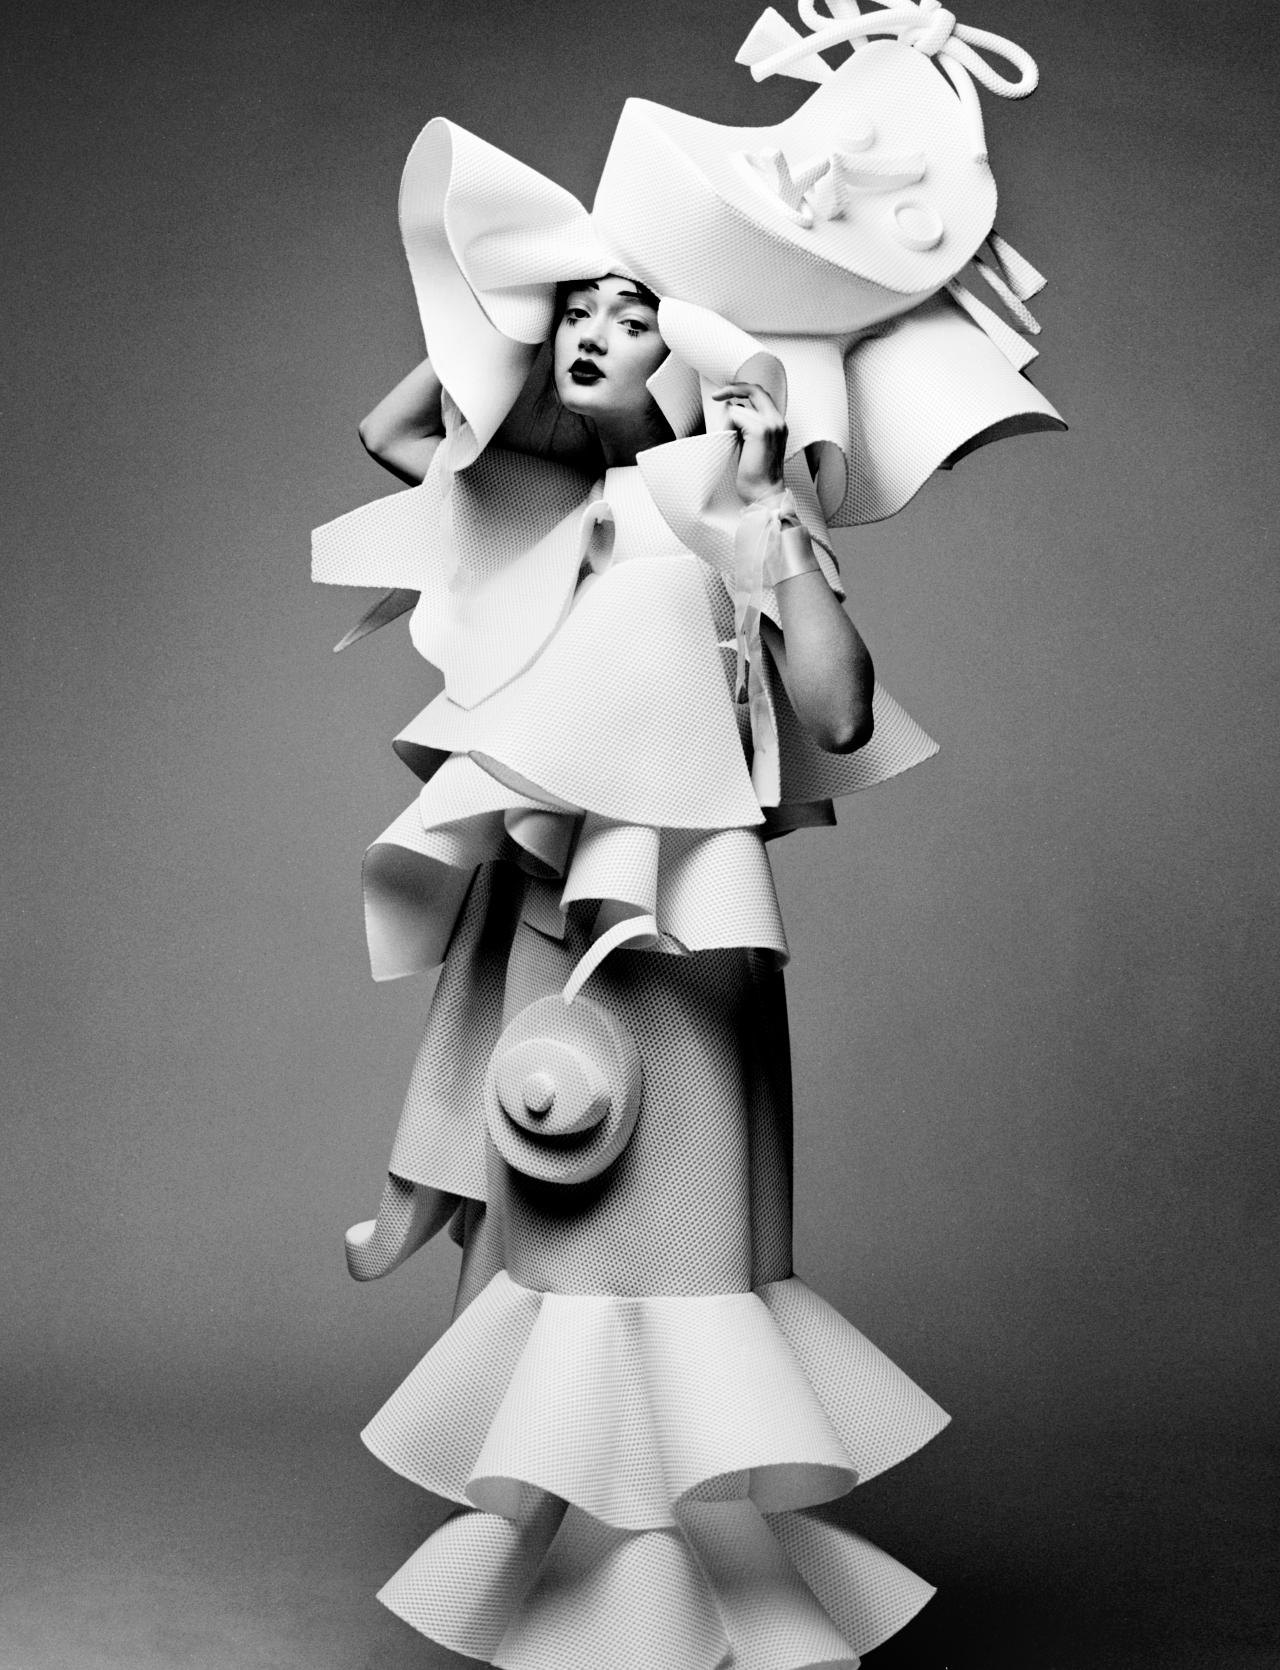 Viktor&Rolf, Performance of Sculptures, haute couture collection, SS 2016. Photo © Team Peter Stigter